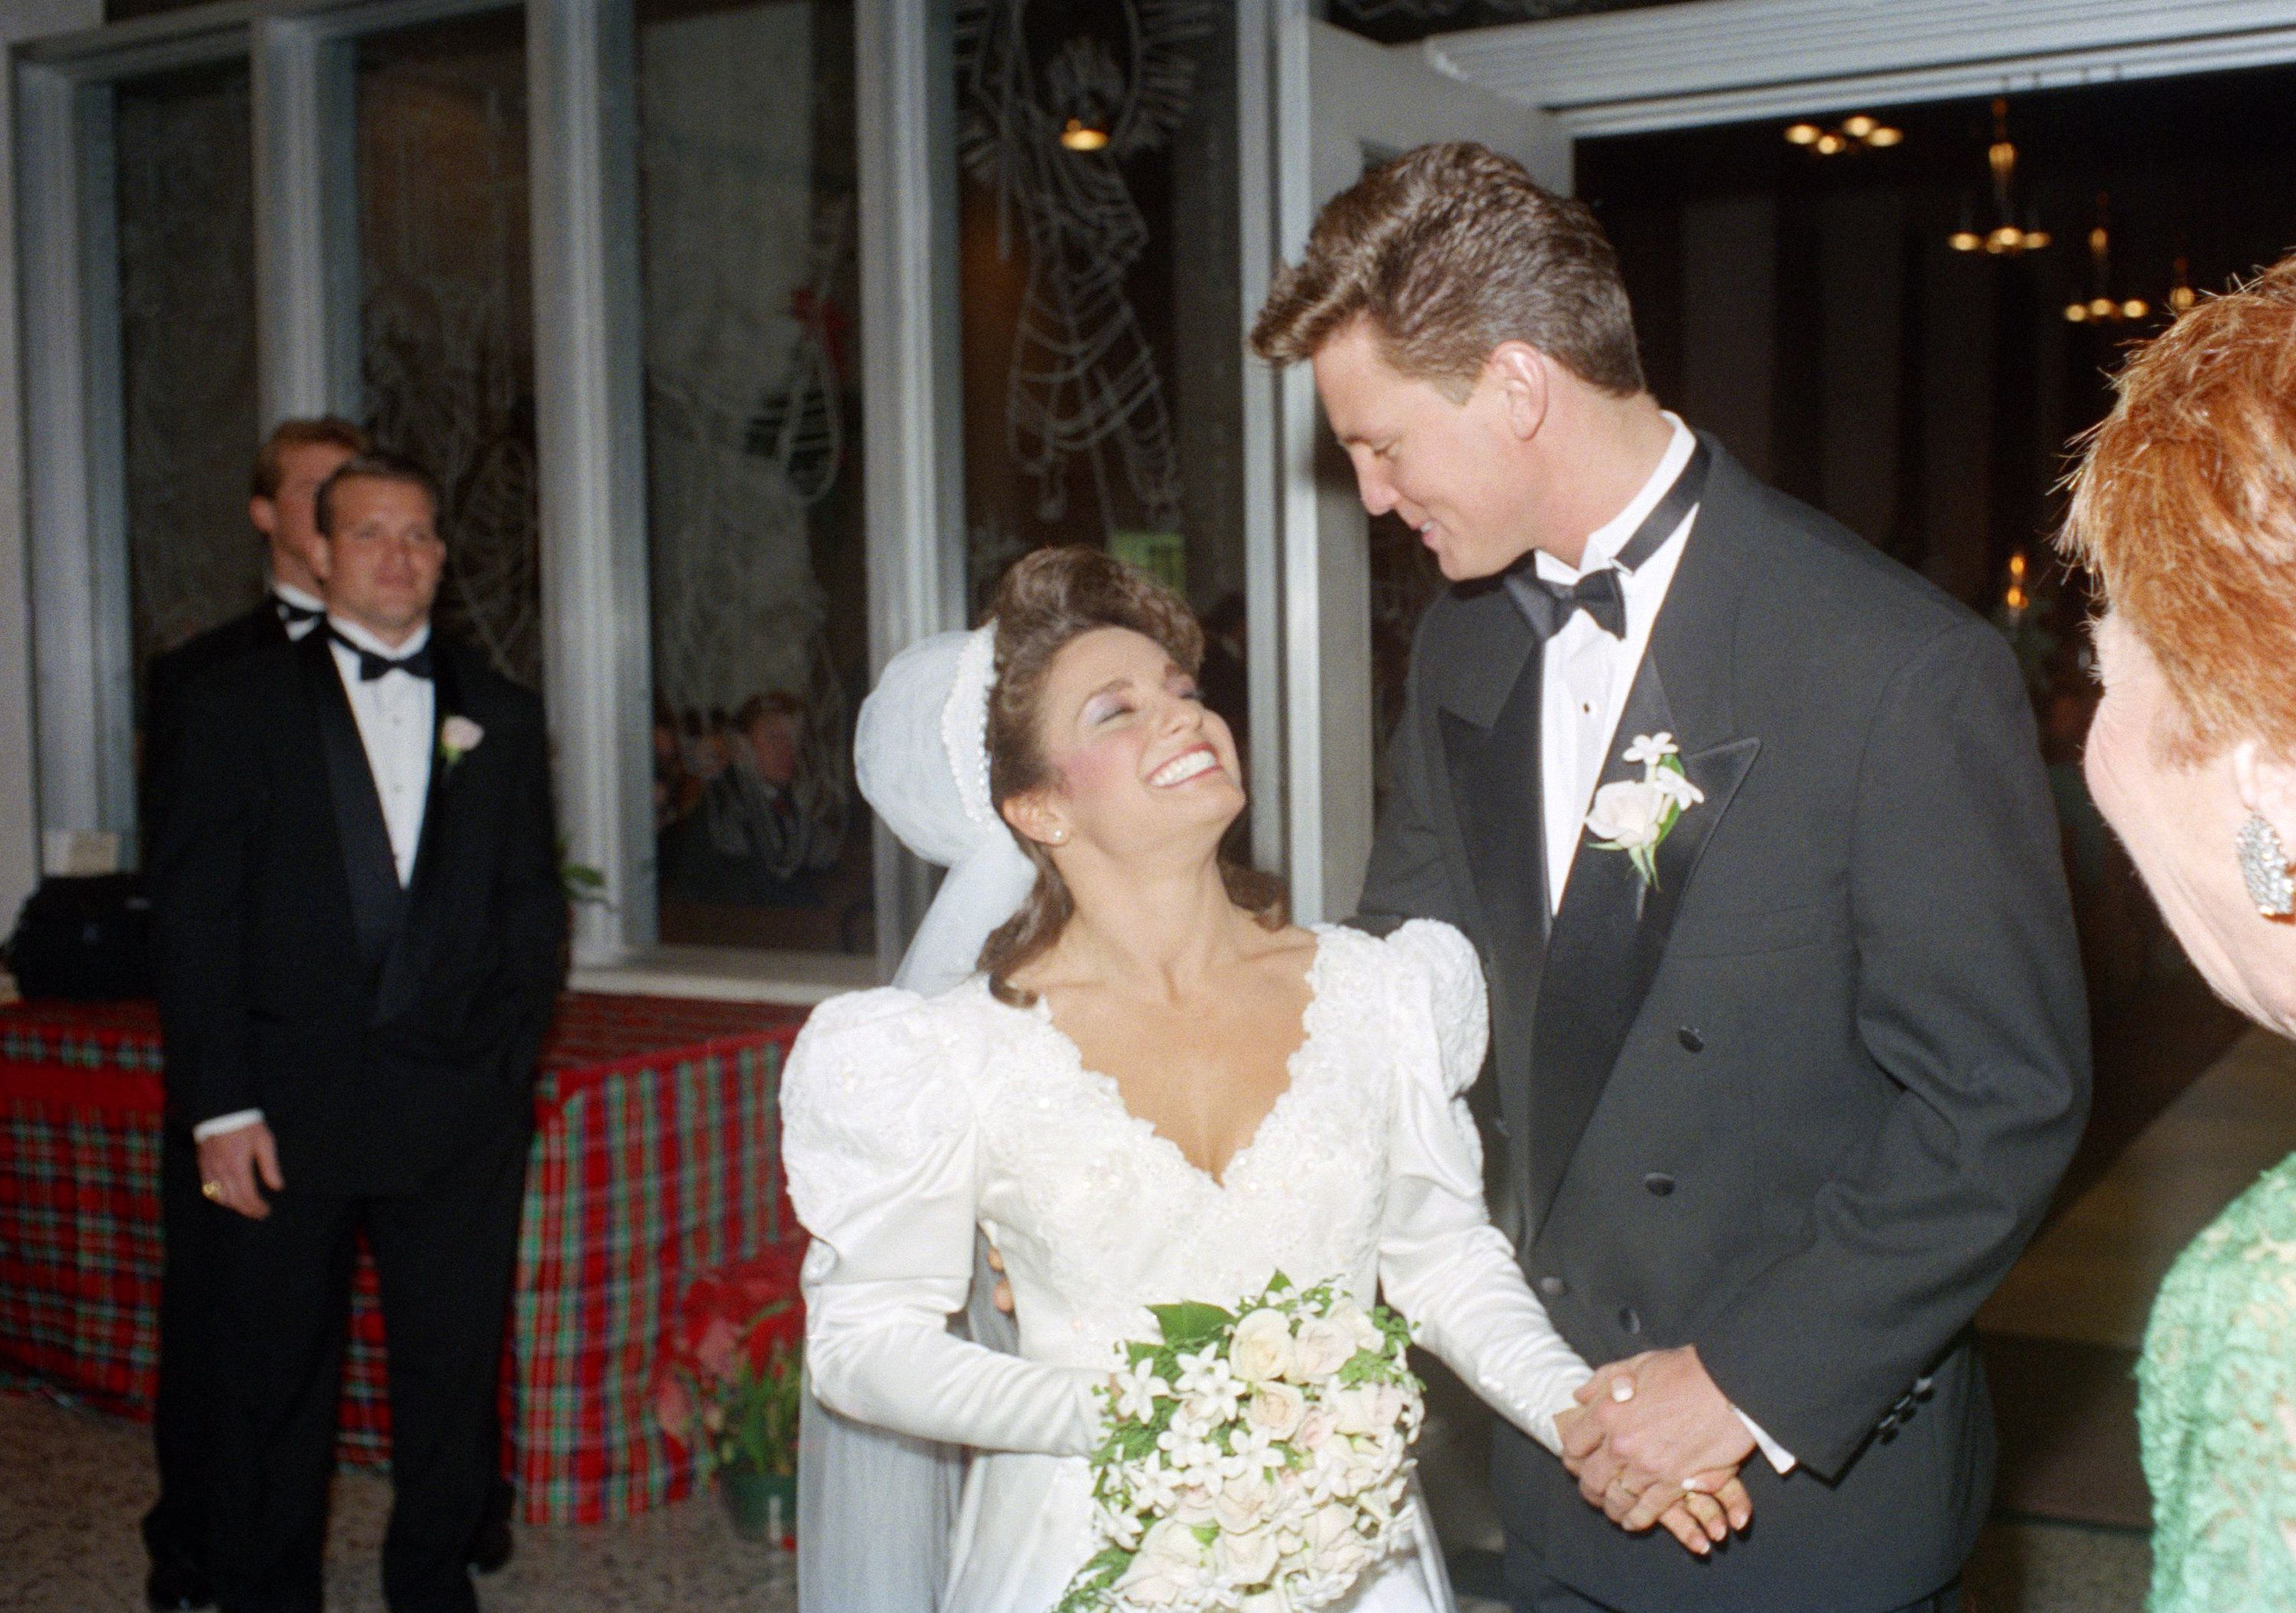 Nadia Comaneci And Bart Conner Wedding